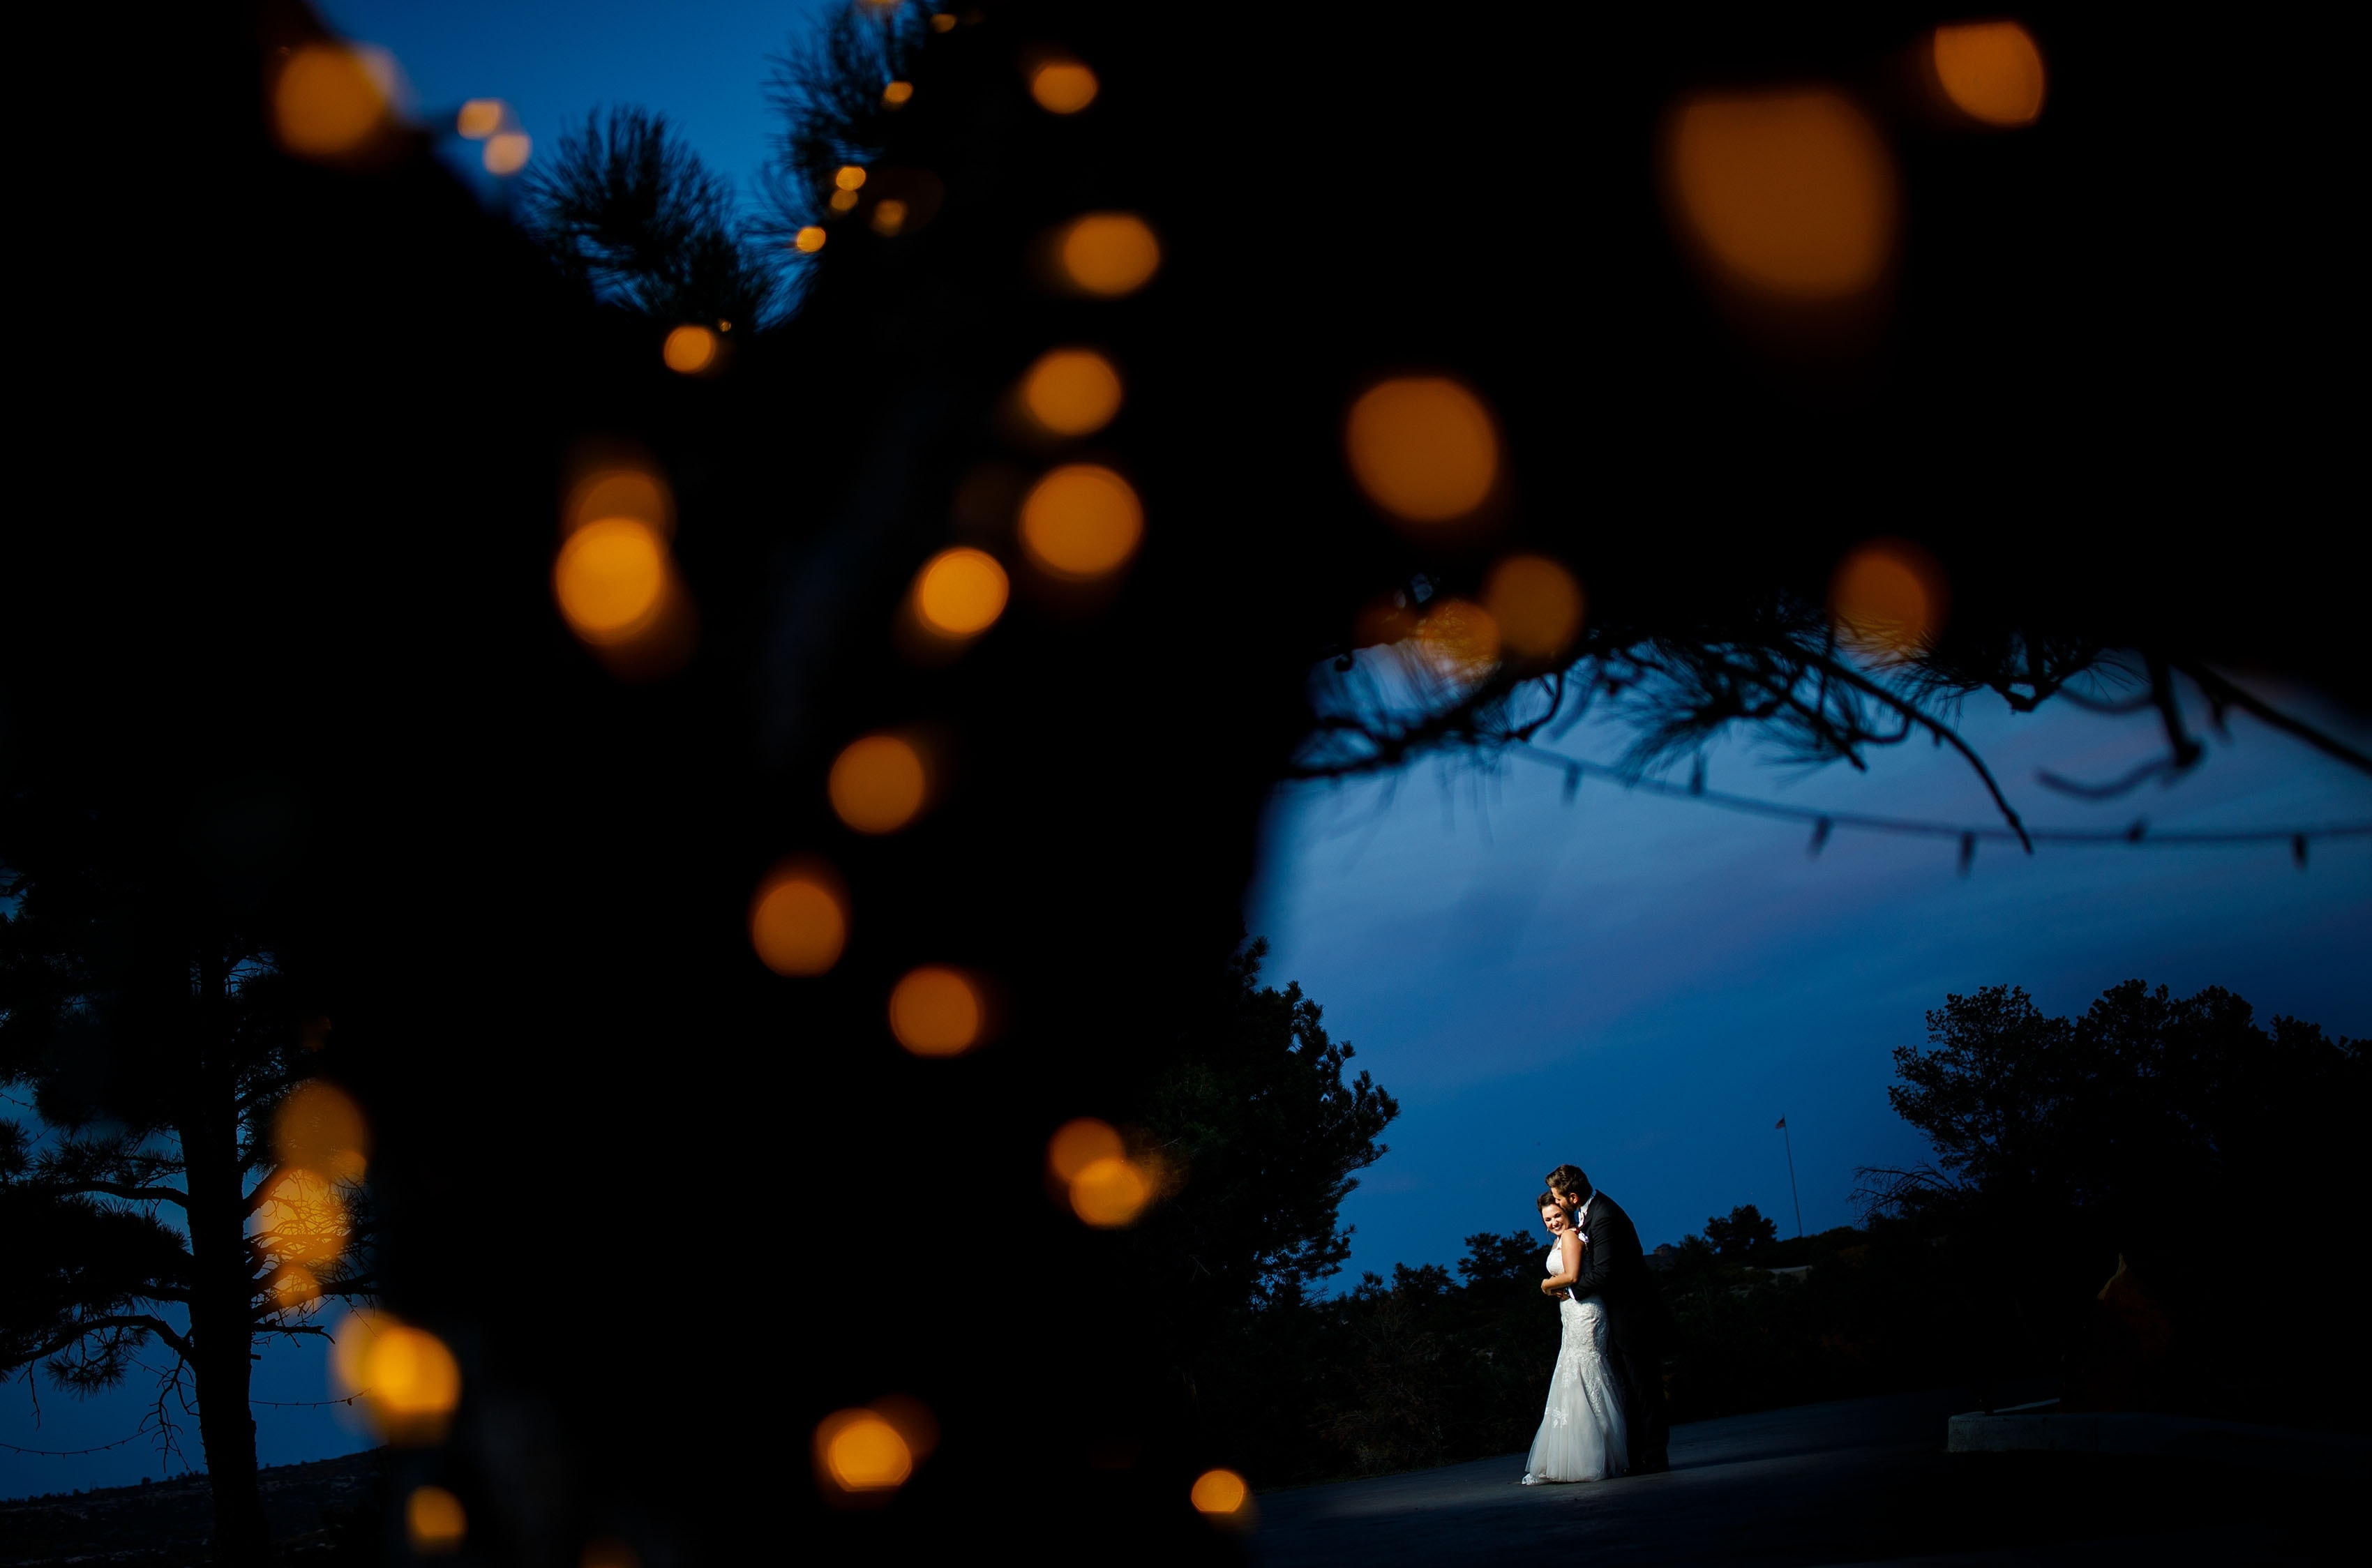 Melissa and Jordan pose together at dusk in Sedalia during their Cherokee Ranch and Castle wedding